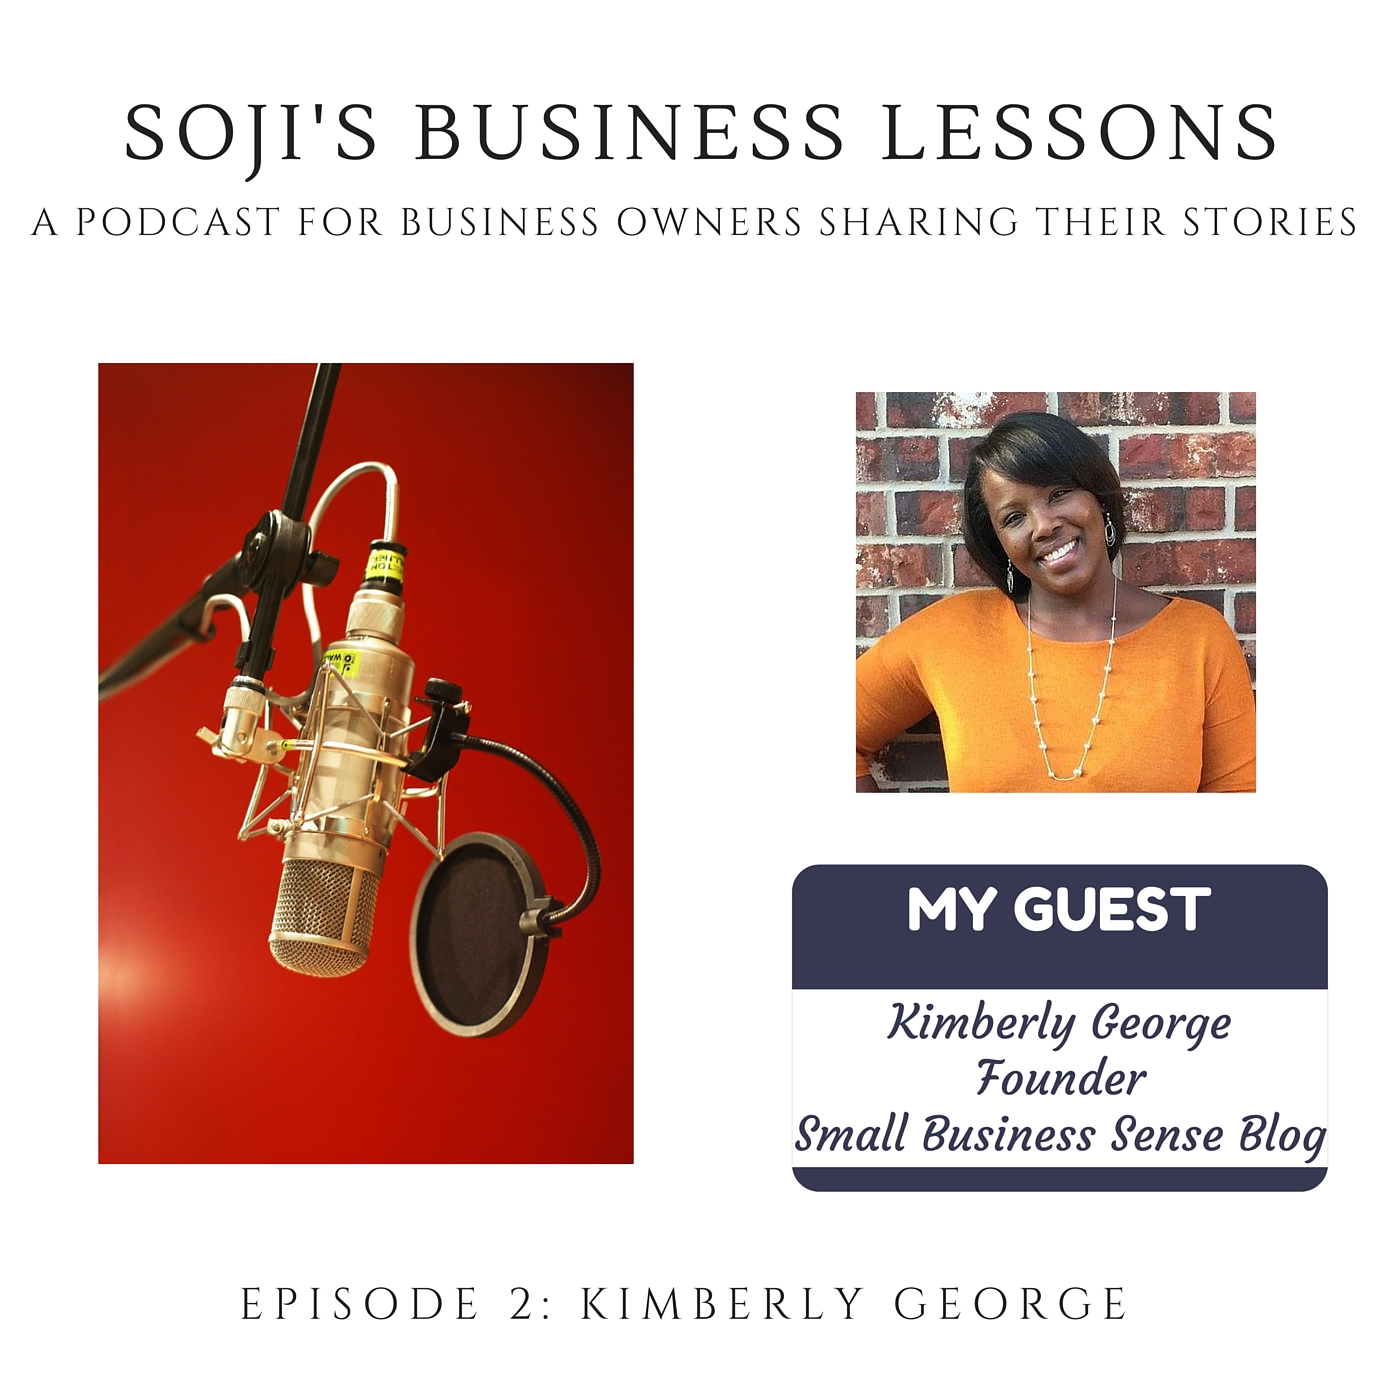 SOJI'S BUSINESS LESSONS EPISODE 1